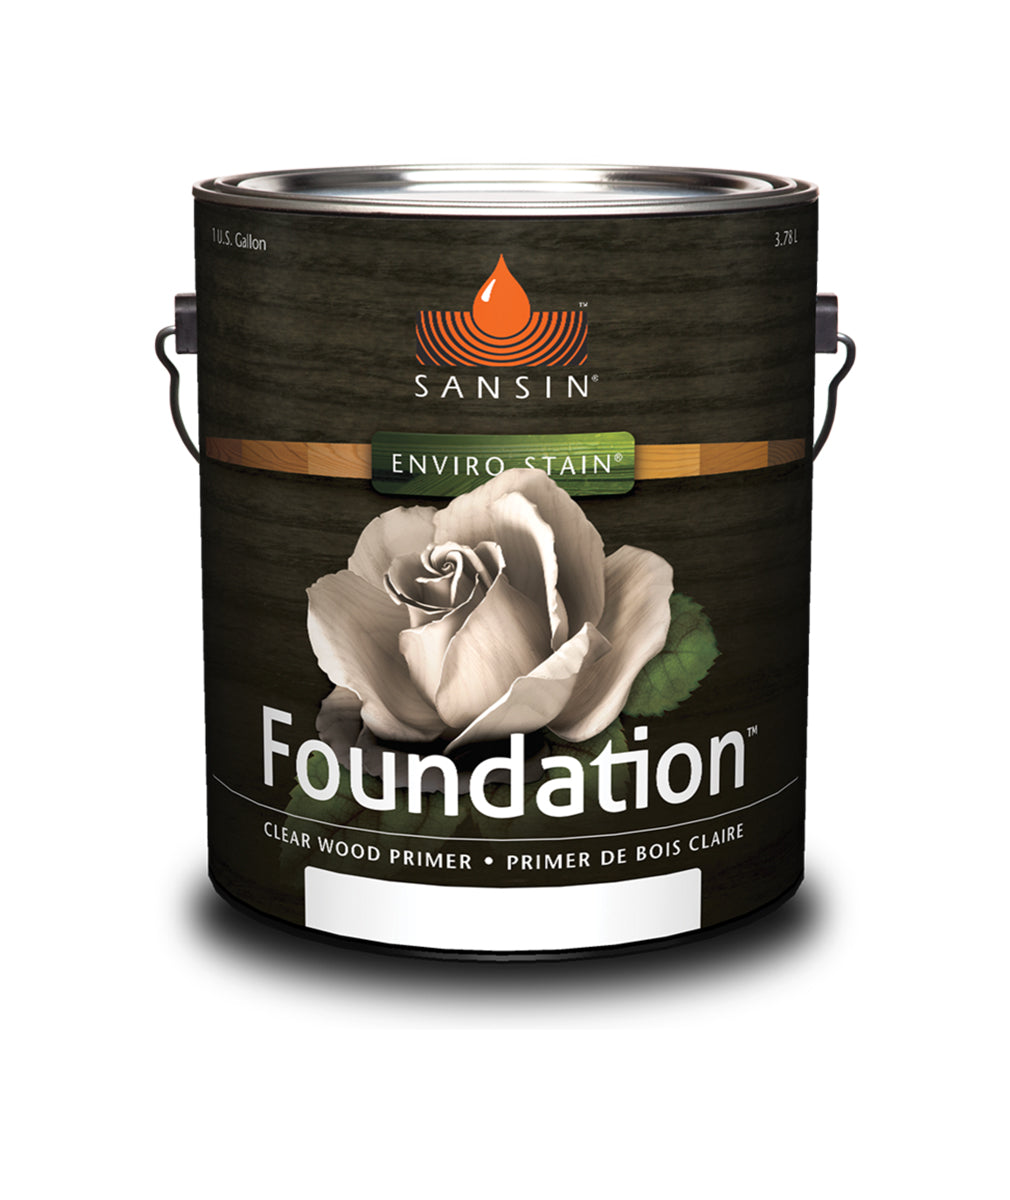 Sansin Foundation clear wood primer, available at Catalina Paints in CA.